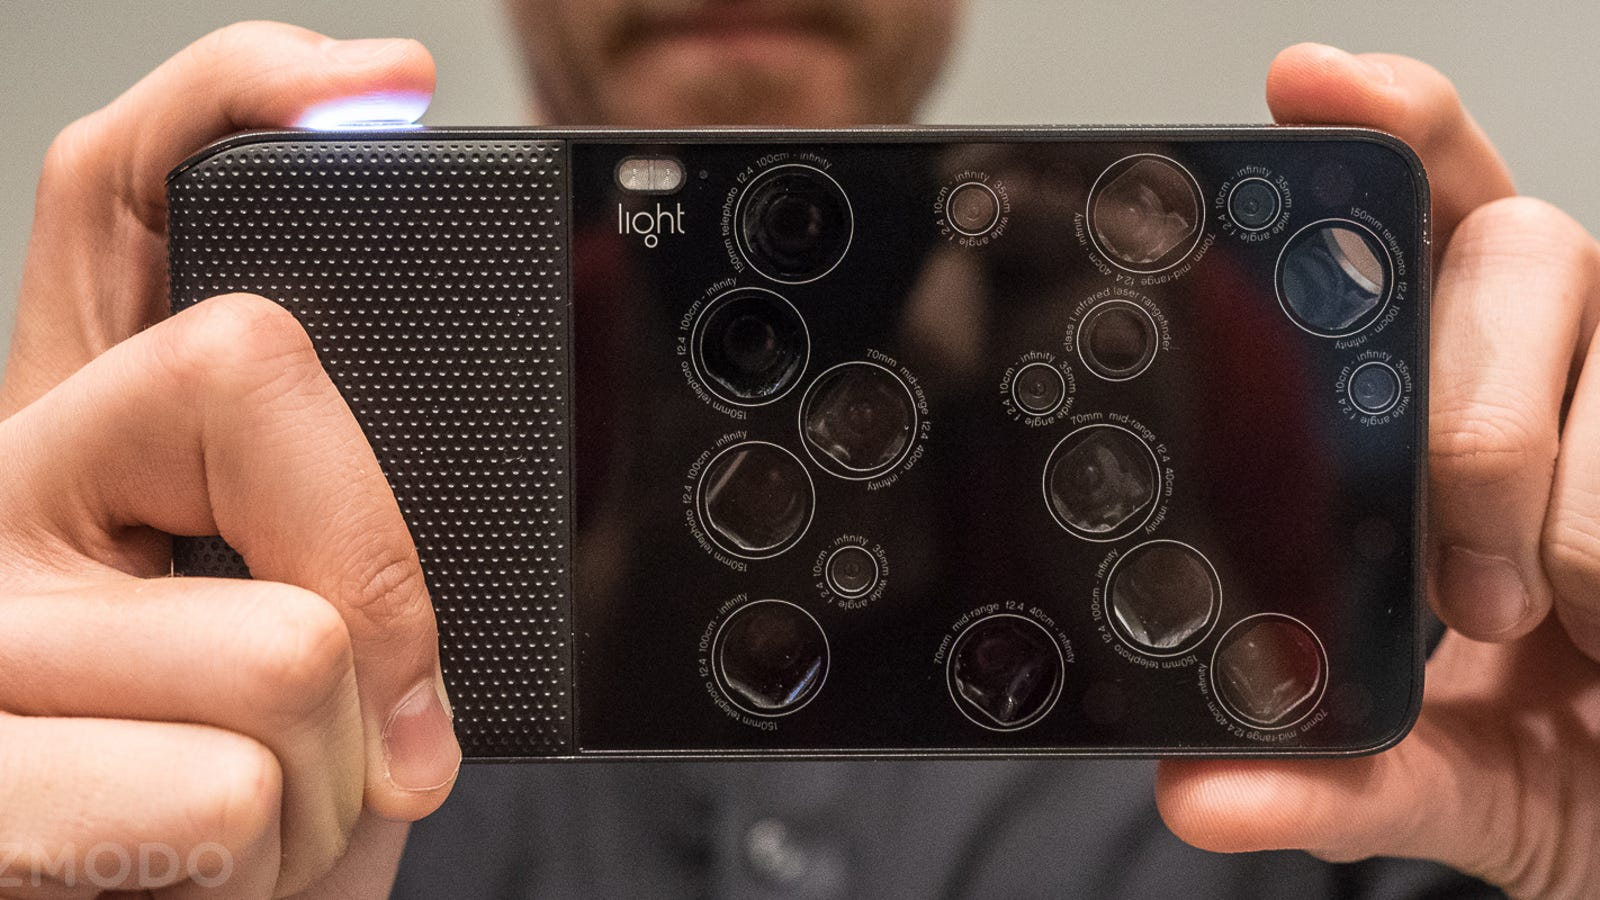 This Bug-Eyed Camera Is a Whole New Take On Capturing Pro Quality Pics